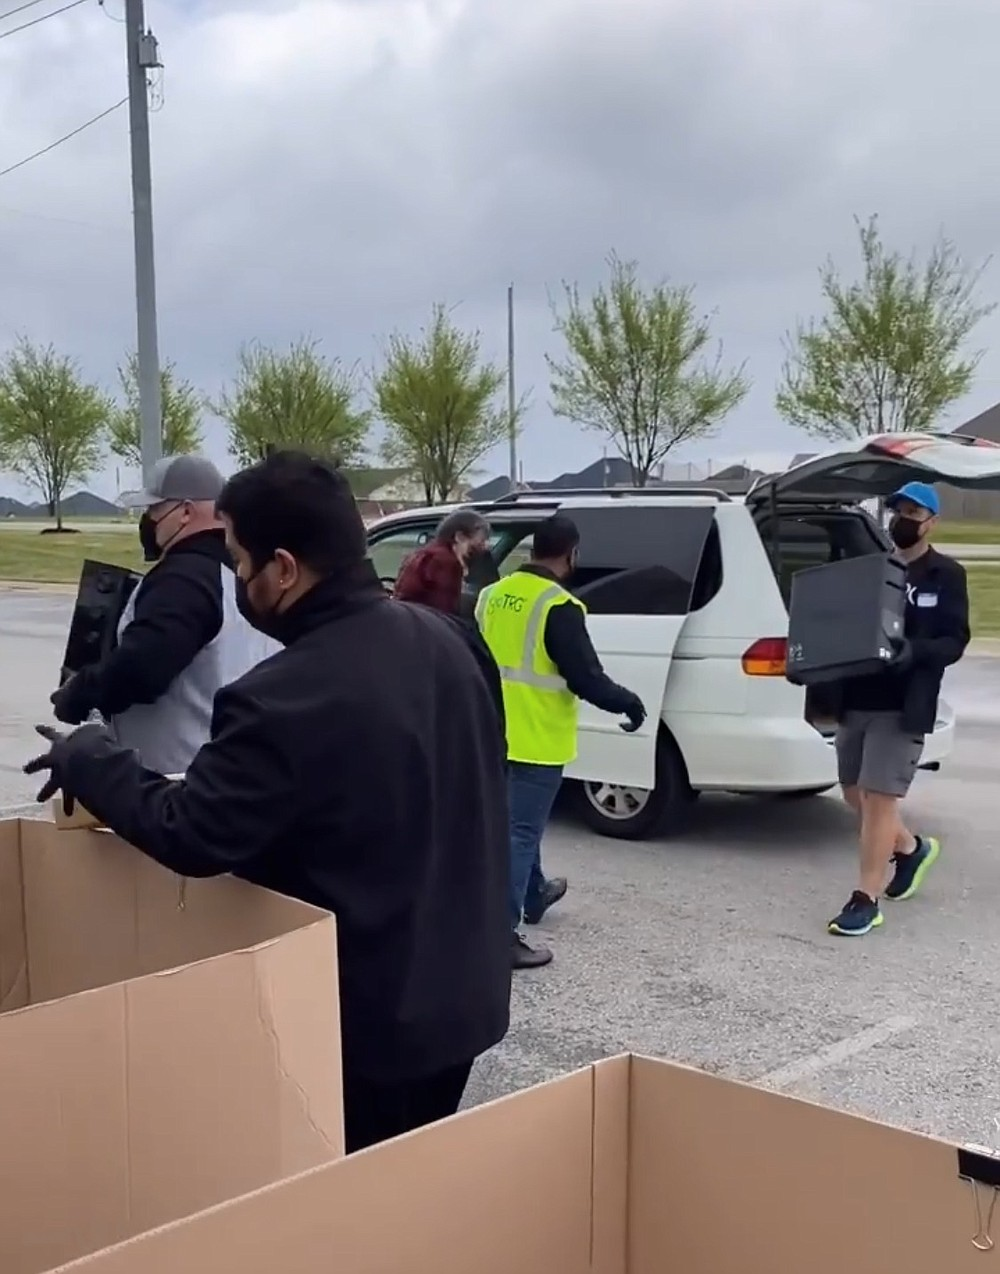 In recognition of Earth Day, goTRG hosted a drive-through community electronics recycling drive at its Bentonville location. A leading retail returns management company working with Walmart, Lowe's, Lenovo and other top U.S. retailers, goTRG processes over 100 million items each year, refurbishes 30+ million electronics and was just named to Fast Company's Most Innovative Companies for 2021.  (Courtesy Photo)